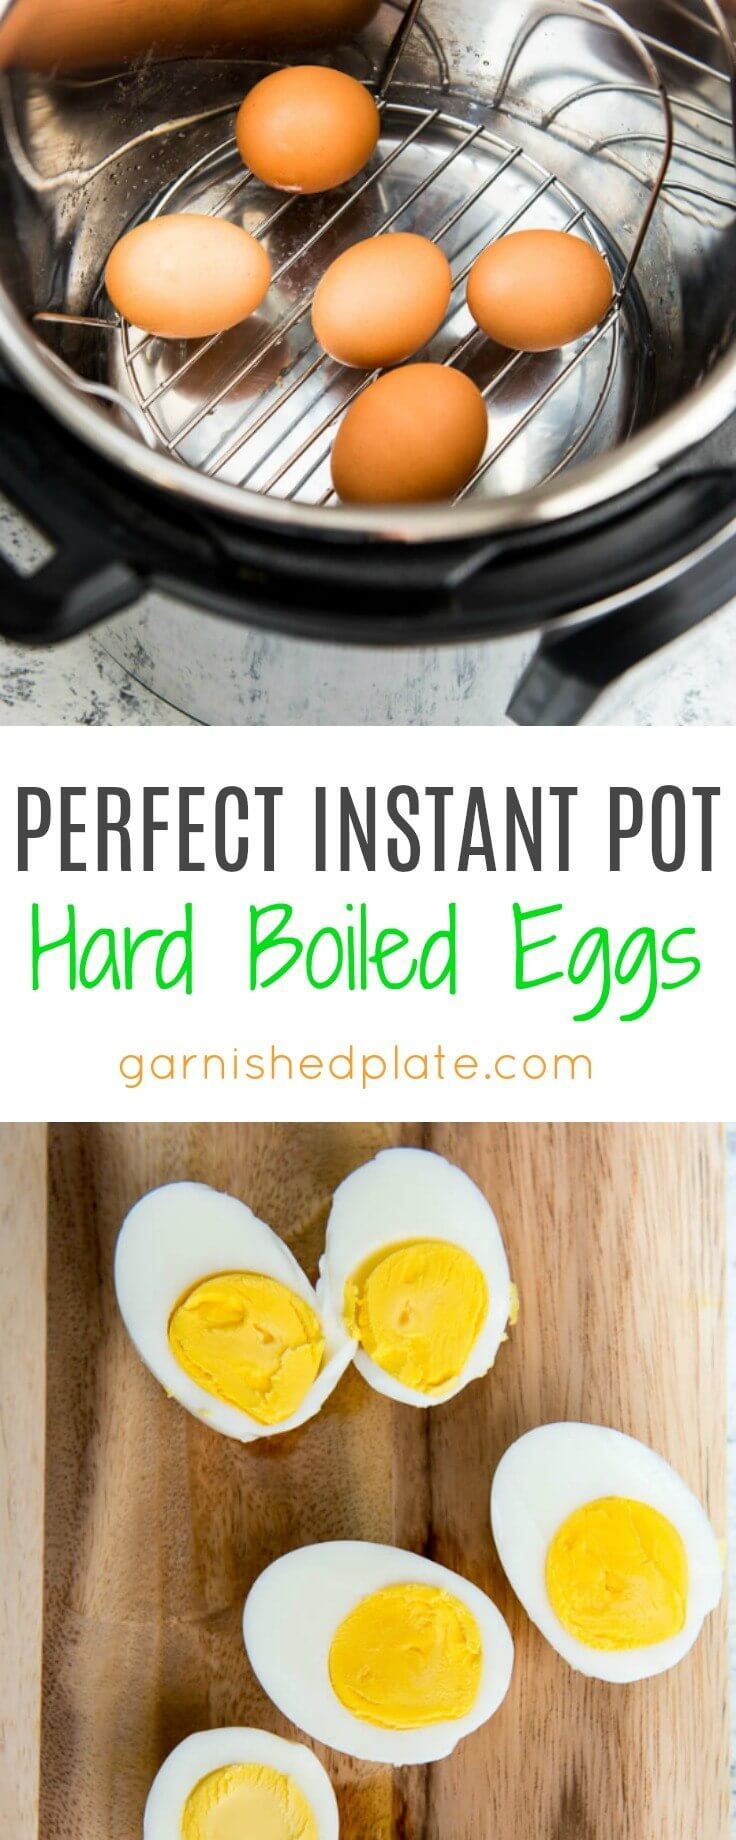 Perfect Instant Pot Hard Boiled Eggs are the simplest and most foolproof way of making Hard Boiled Eggs every time! via @garnishedplate